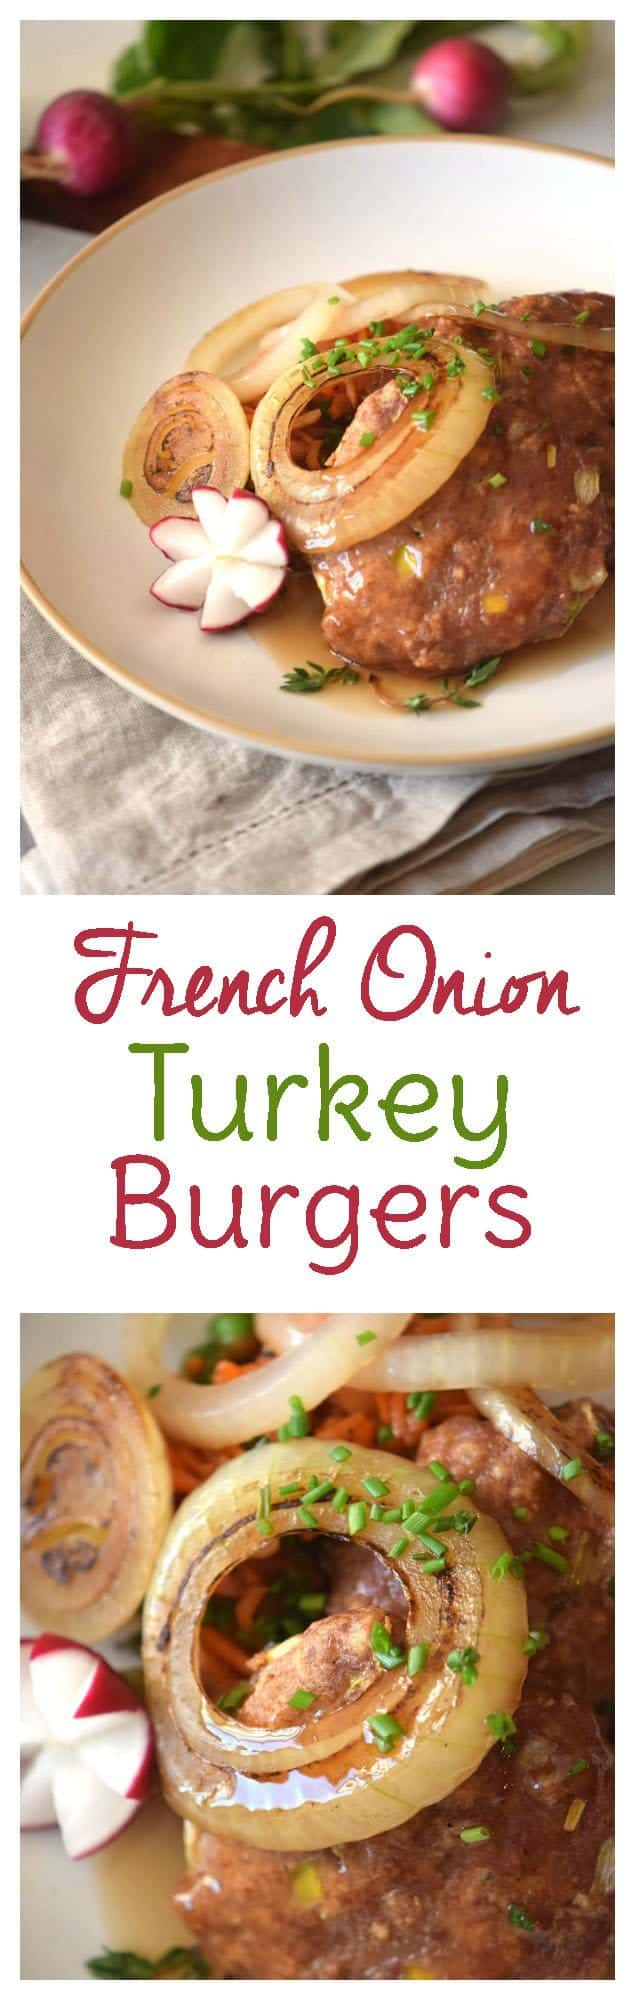 French Onion Turkey Burgers. Moist and delicious!